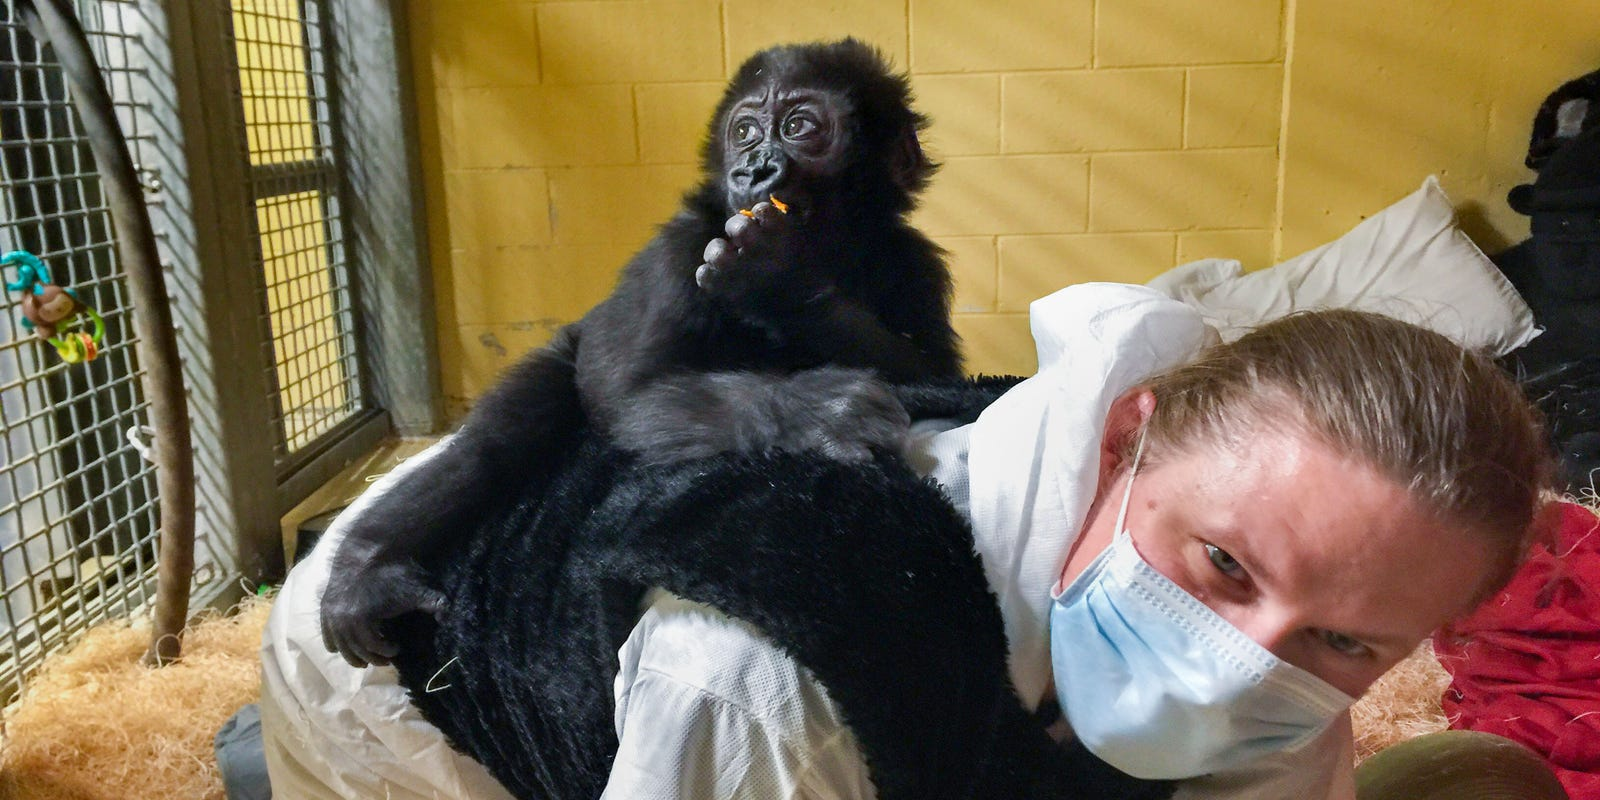 85b1f44539b4 Zookeepers rise to challenge of caring for orphan after gorillas die